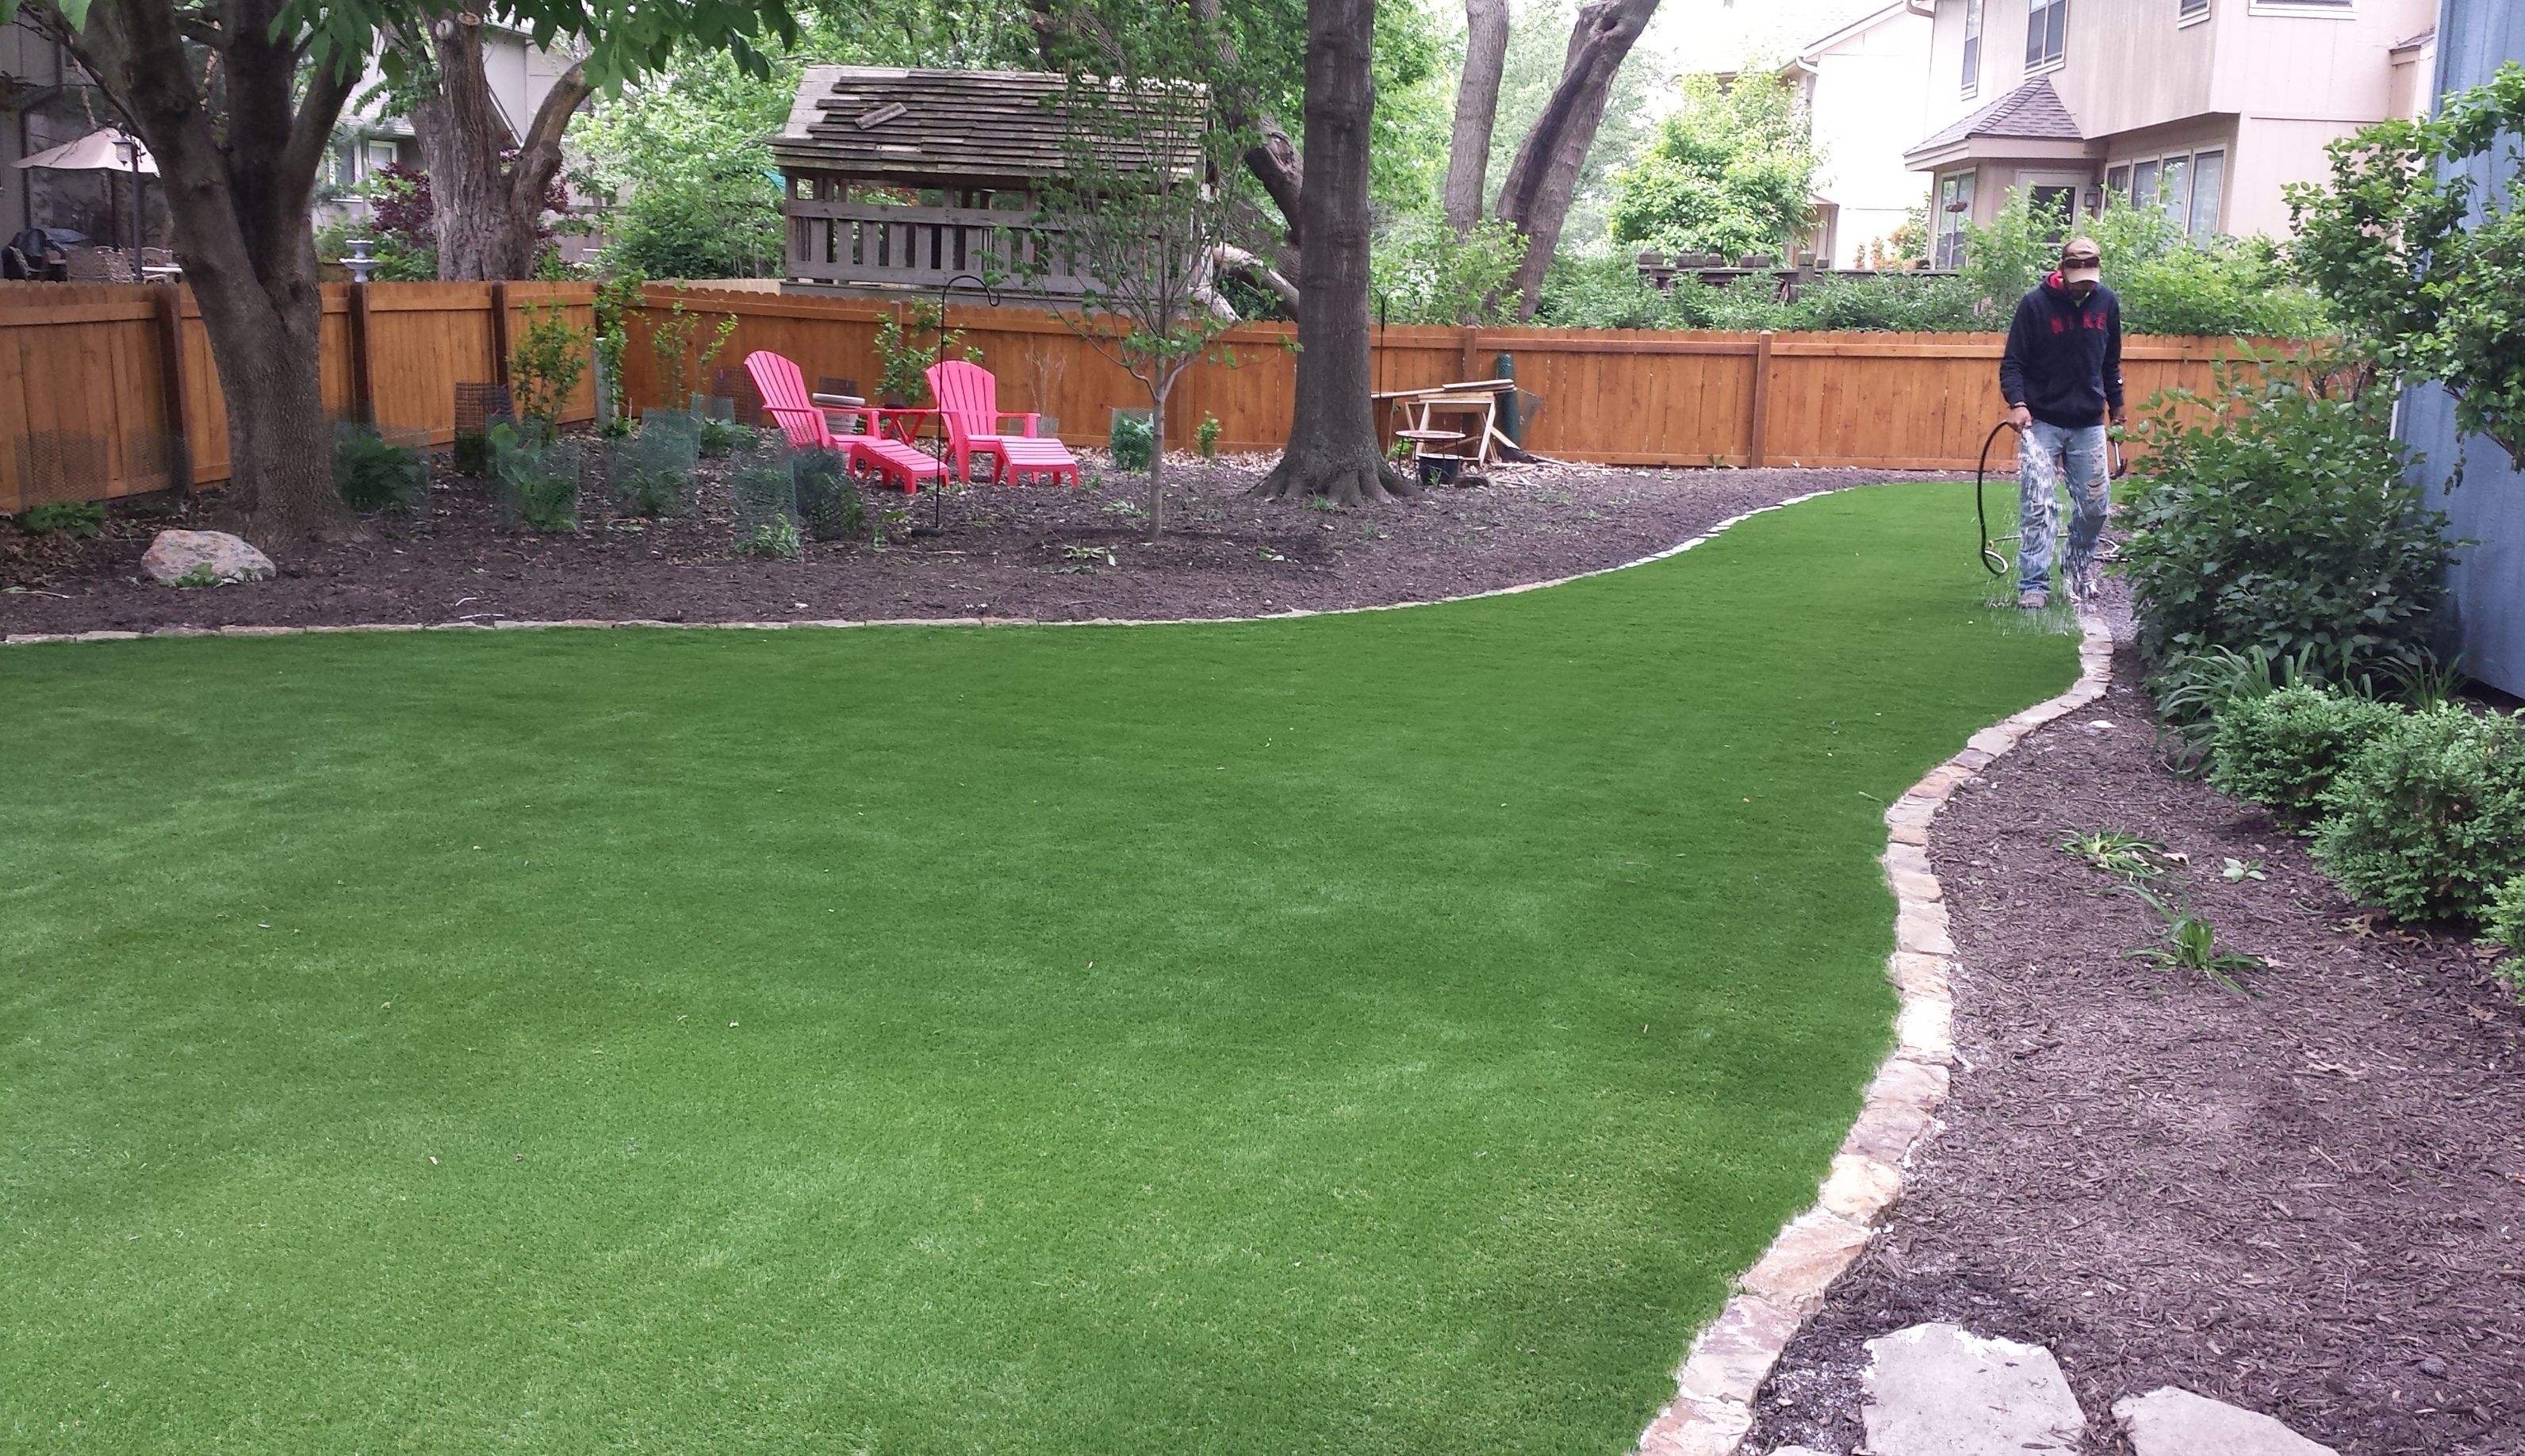 Tired of mowing, battling weeds and lawn issues? How about replacing your grass with astro turf? This is the same product used on NFL fields! No fuss, easy to maintain and pet friendly!